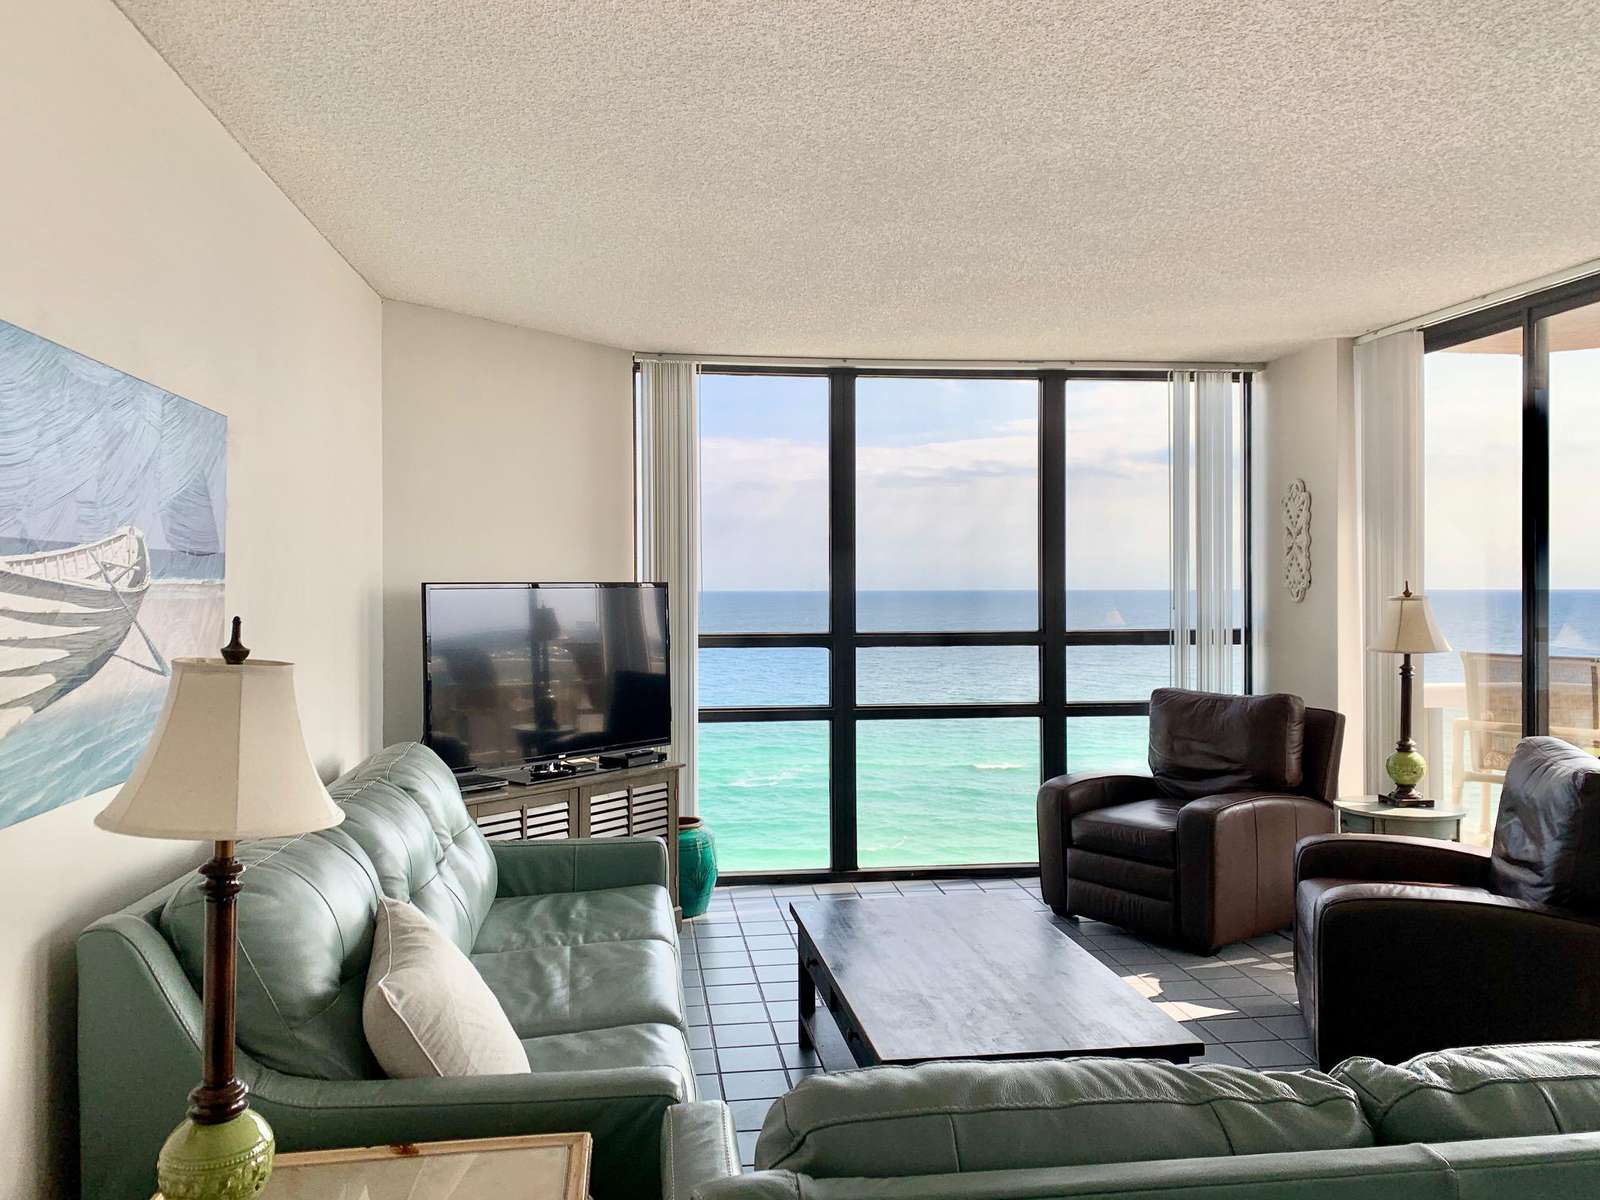 Watch the dolphins from your living room windows! - property